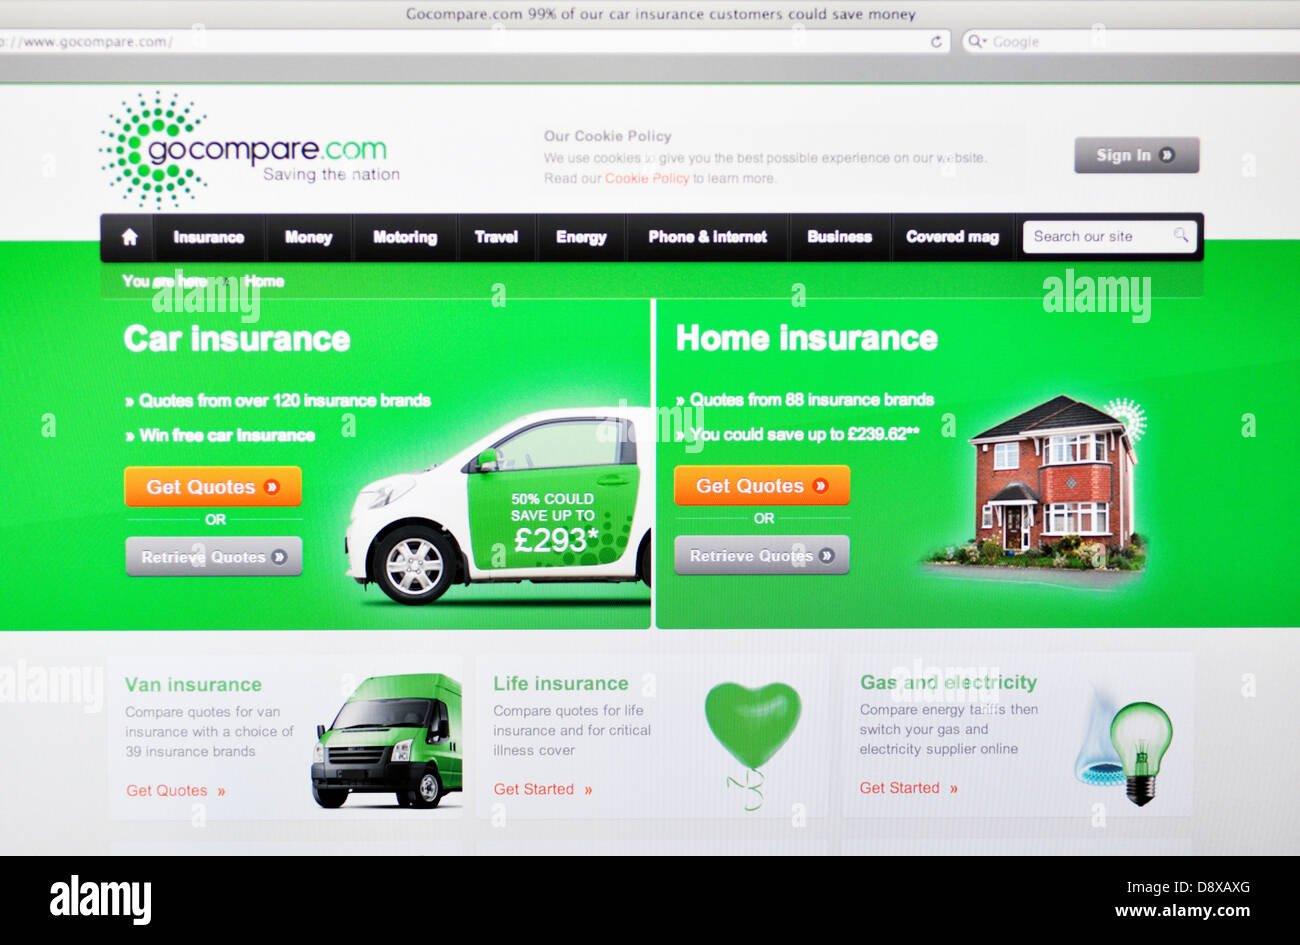 Gocompare Website Insurance Rates Comparison Stock Photo 57127688